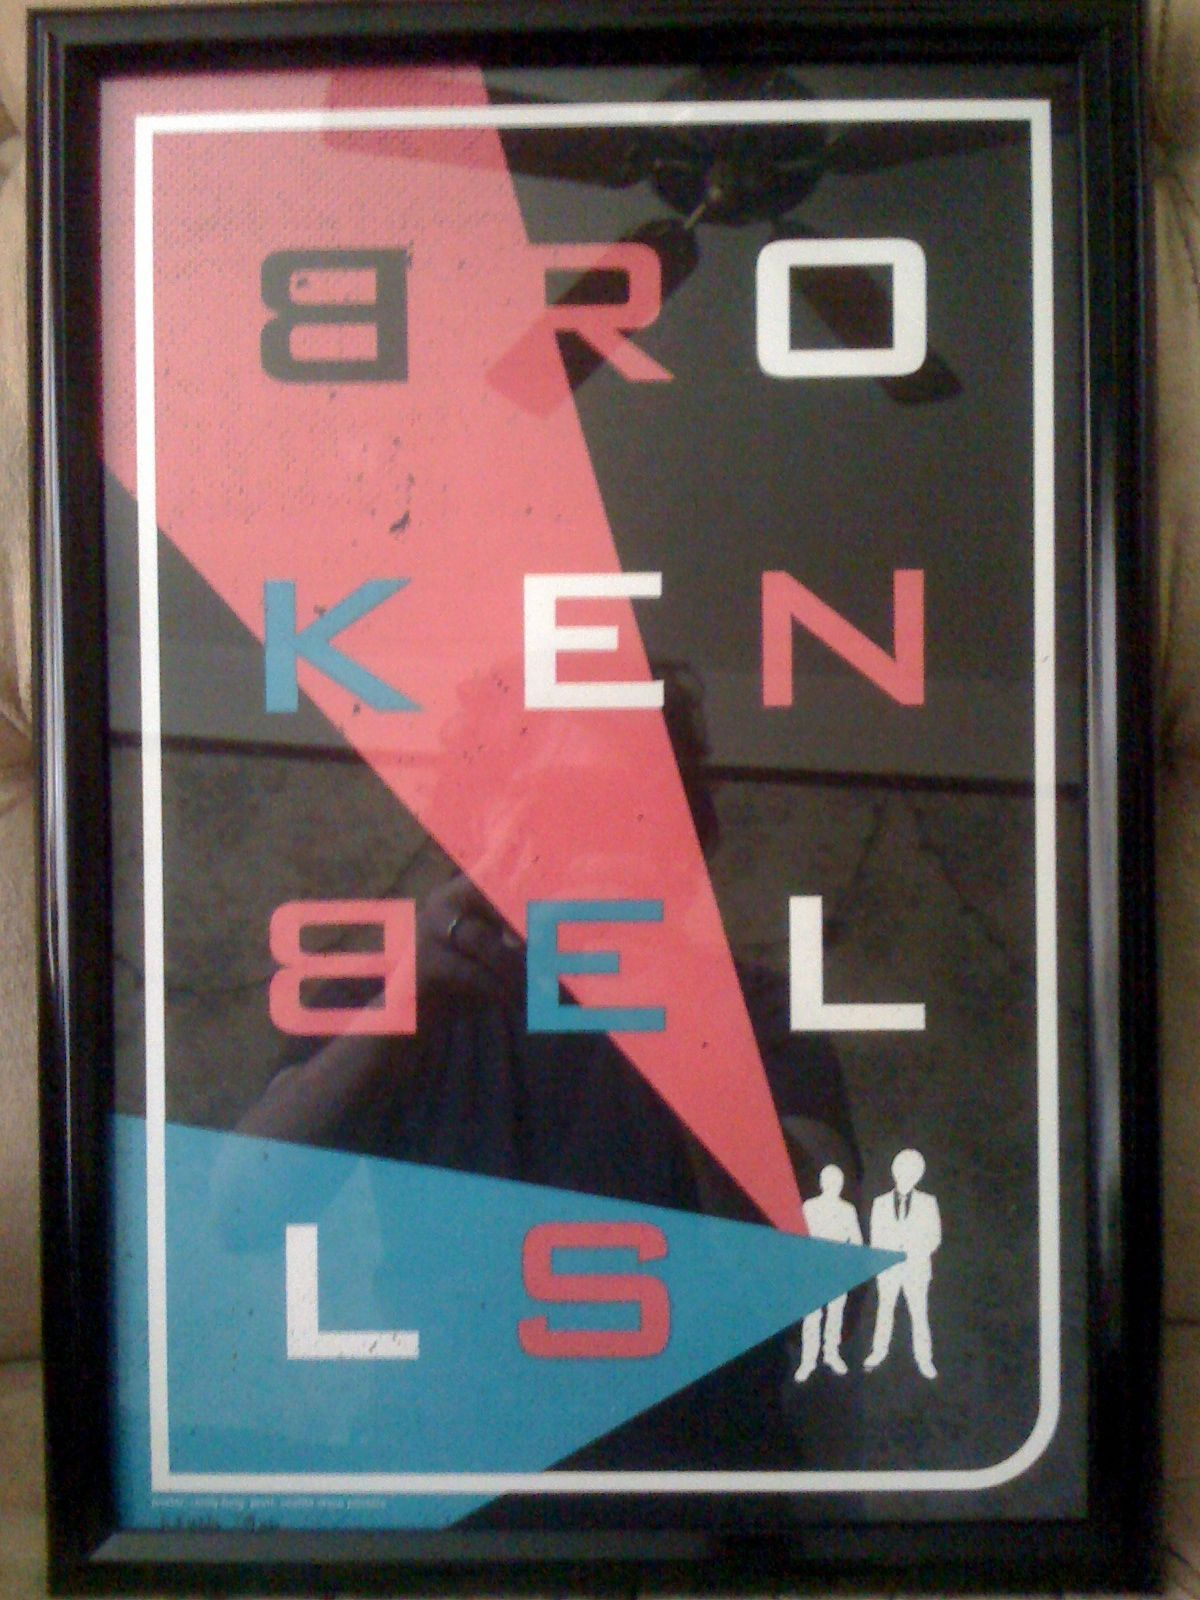 My Broken Bells Poster is Framed   DrKnife iPhone Photo Blog